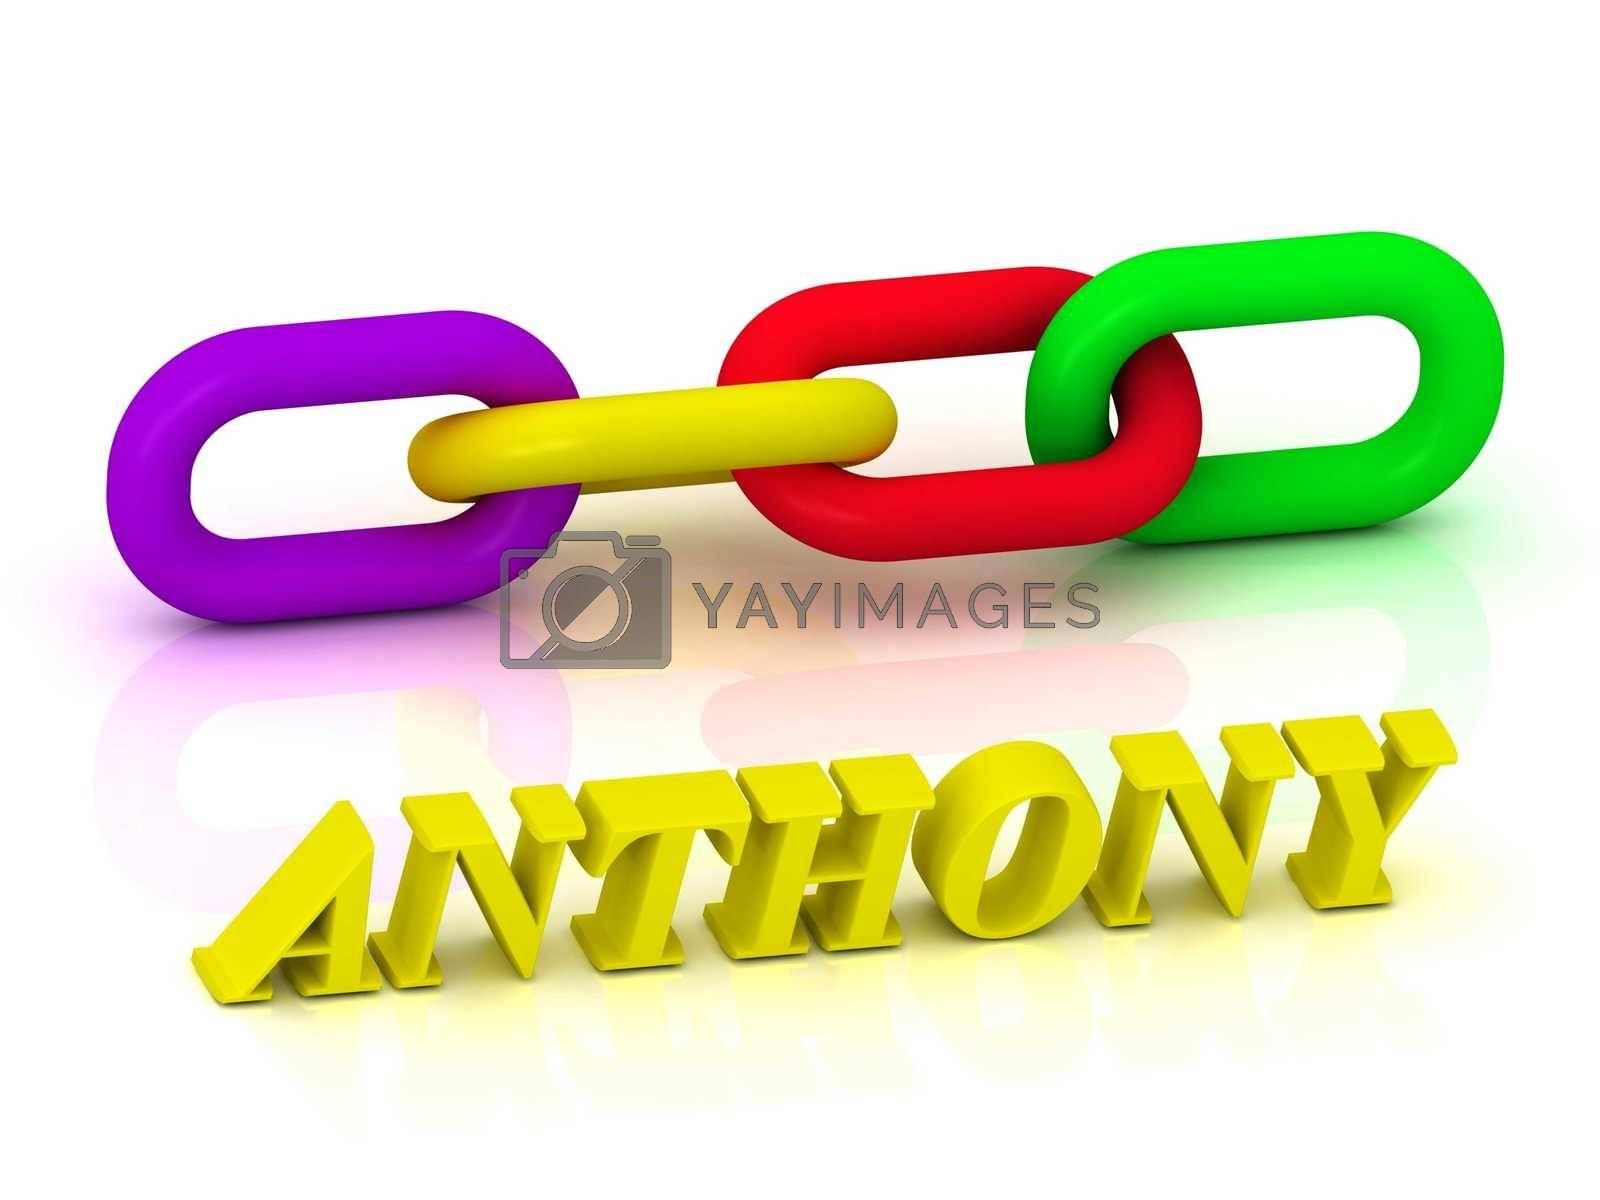 ANTHONY- Name and Family of bright yellow letters and chain of green, yellow, red section on white background